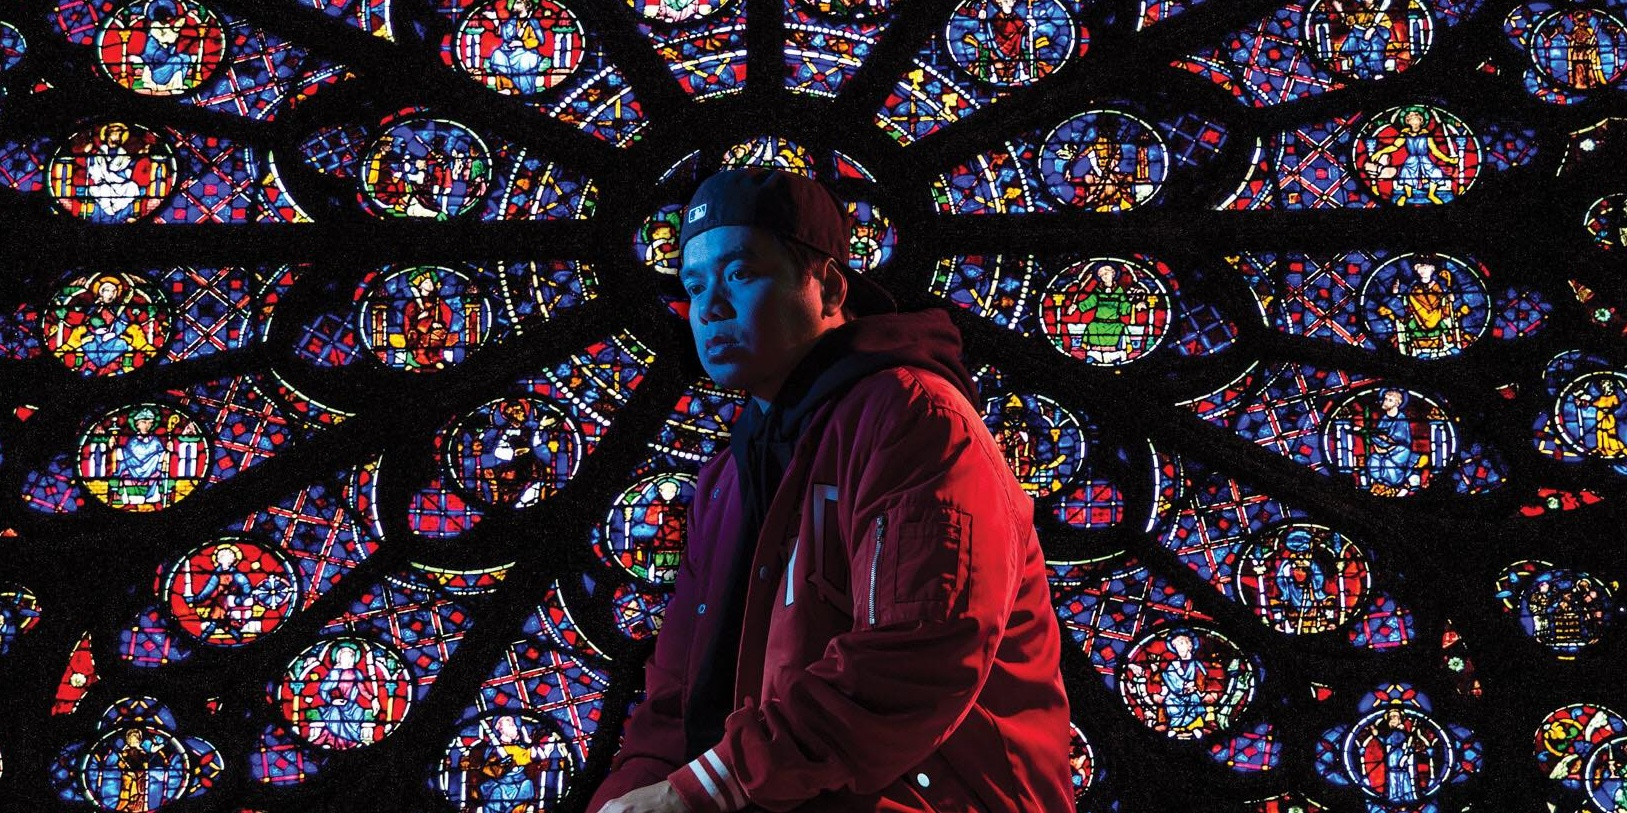 Gloc-9 releases TULAy EP featuring collabs with Julie Anne San Jose, Al James,  Smugglaz, and more – listen